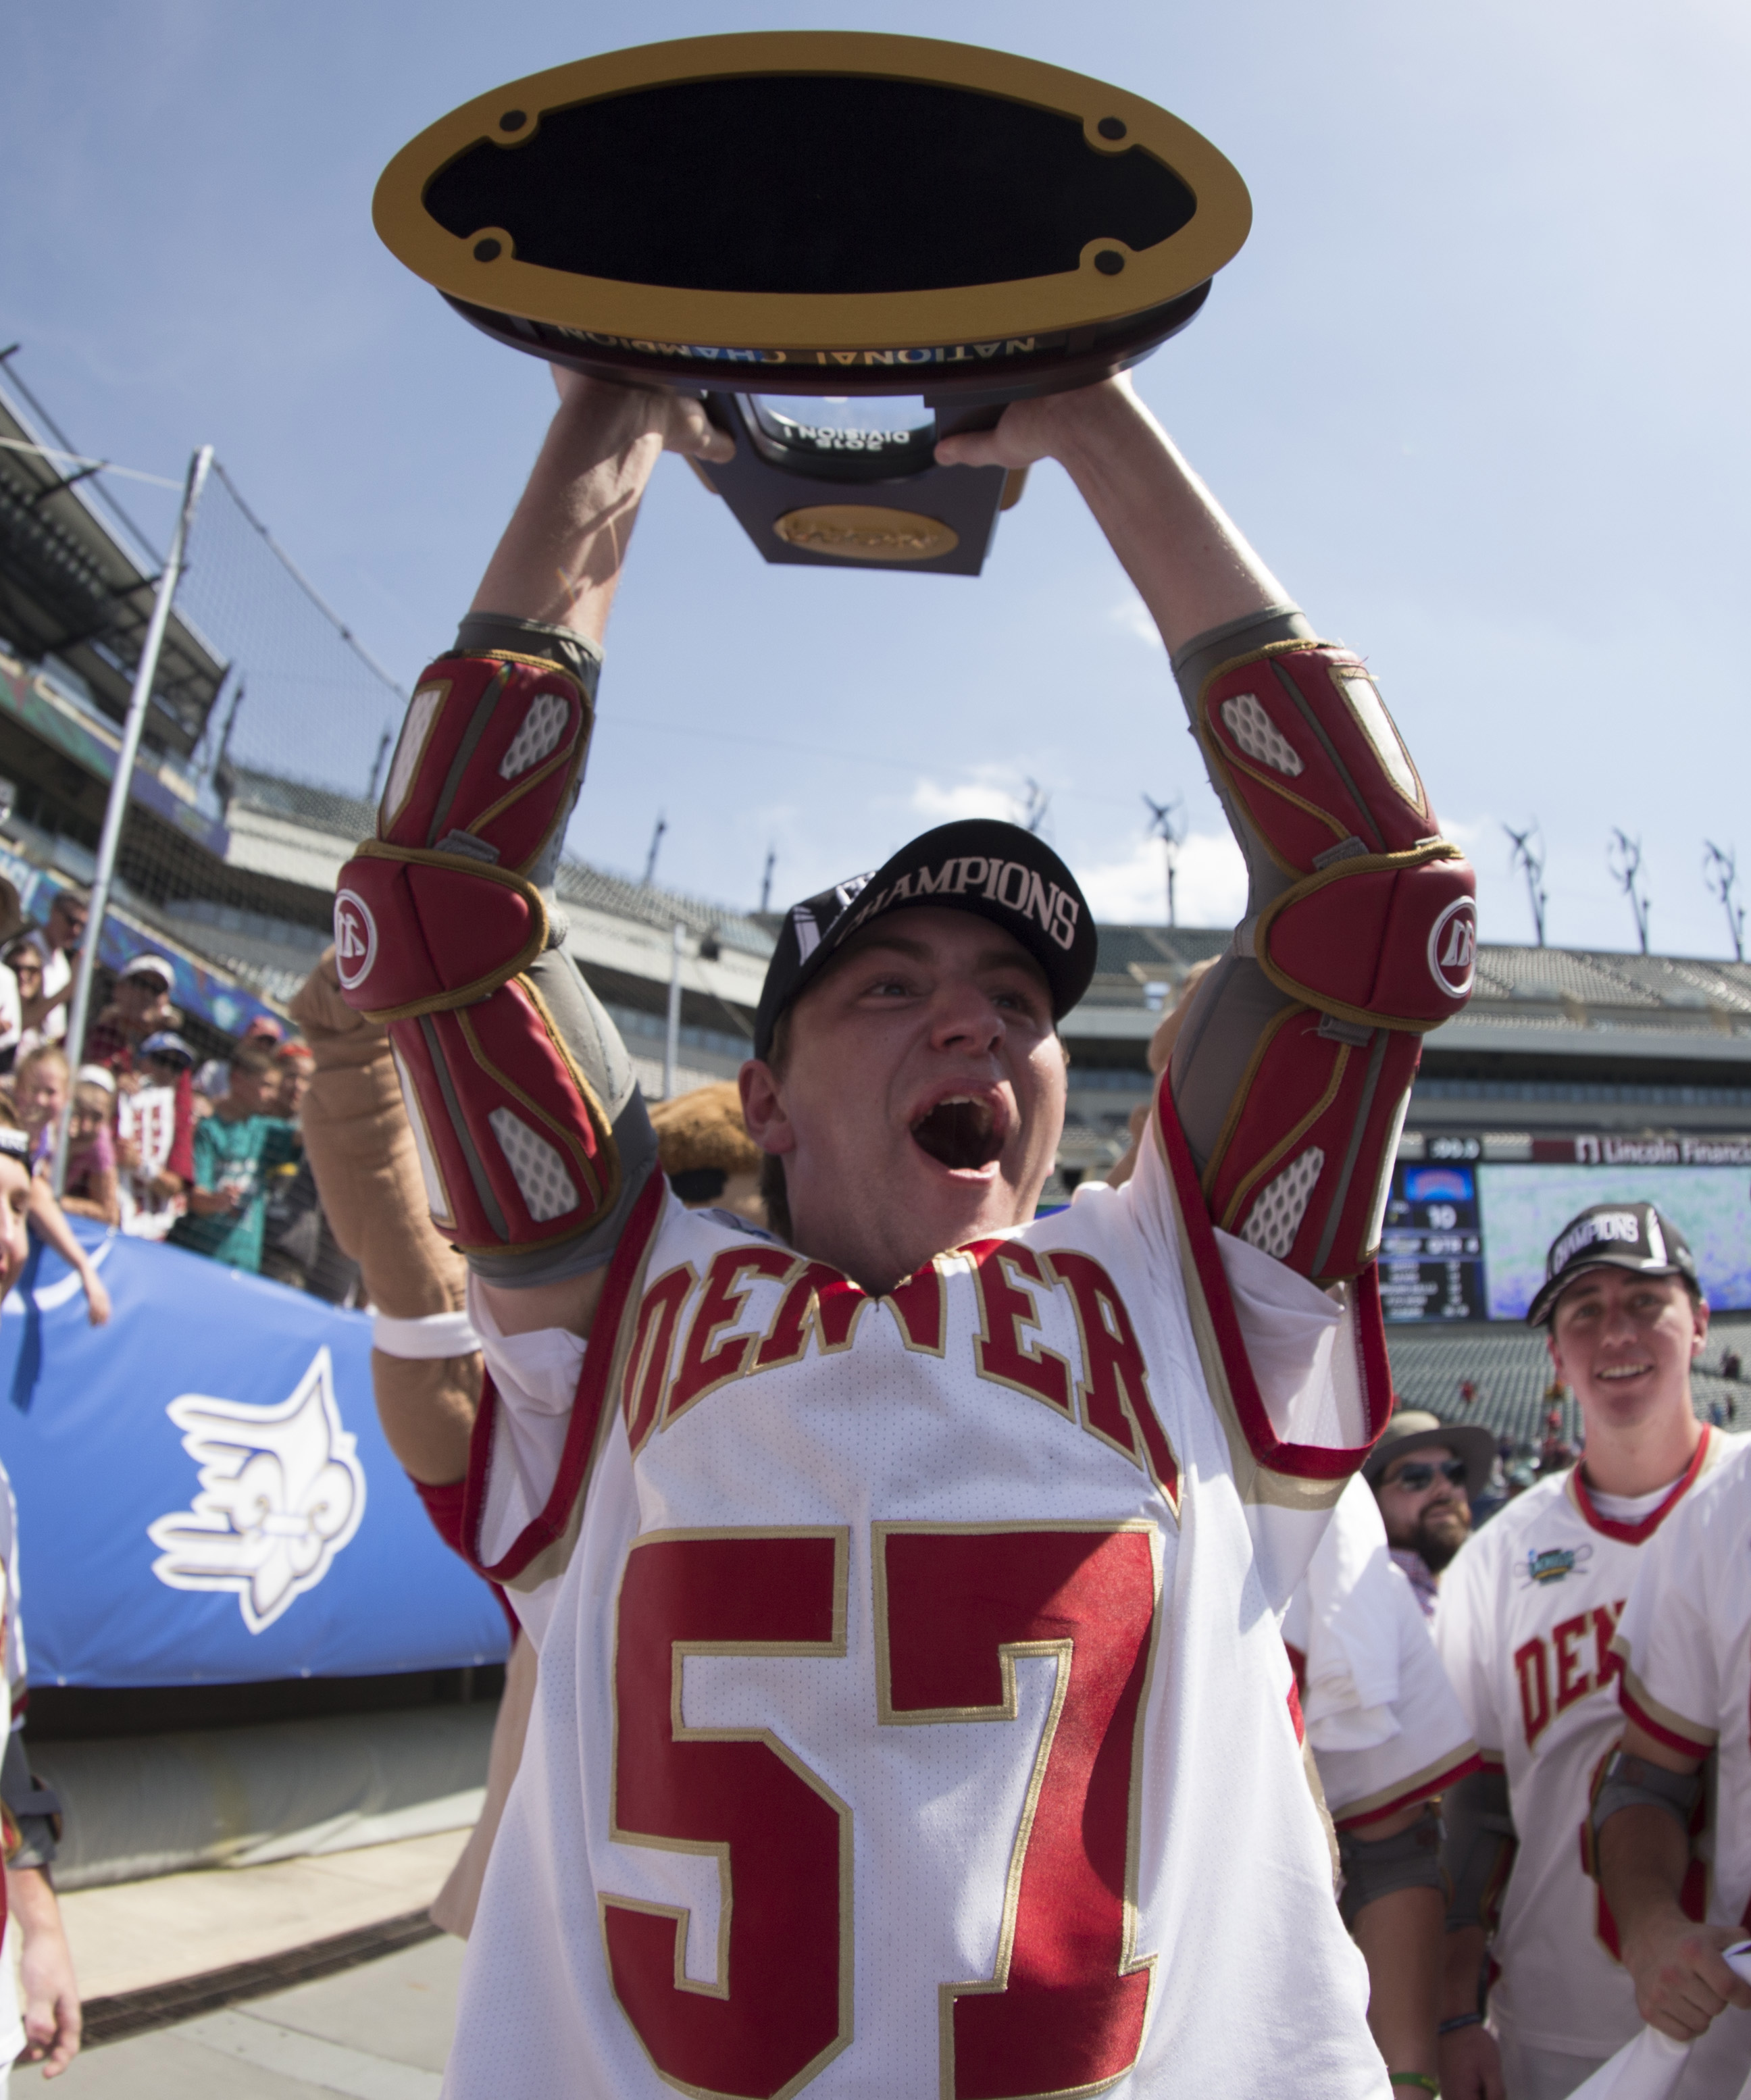 Colin Woolford #57 of the Denver Pioneers holds up the trophy after the game against the Maryland Terrapins on May 25, 2015 in the NCAA Division I Men's Lacrosse Championship at Lincoln Financial Field in Philadelphia, Pennsylvania. The Pioneers defeated the Terrapins 10-5. (Photo by Mitchell Leff/Getty Images)